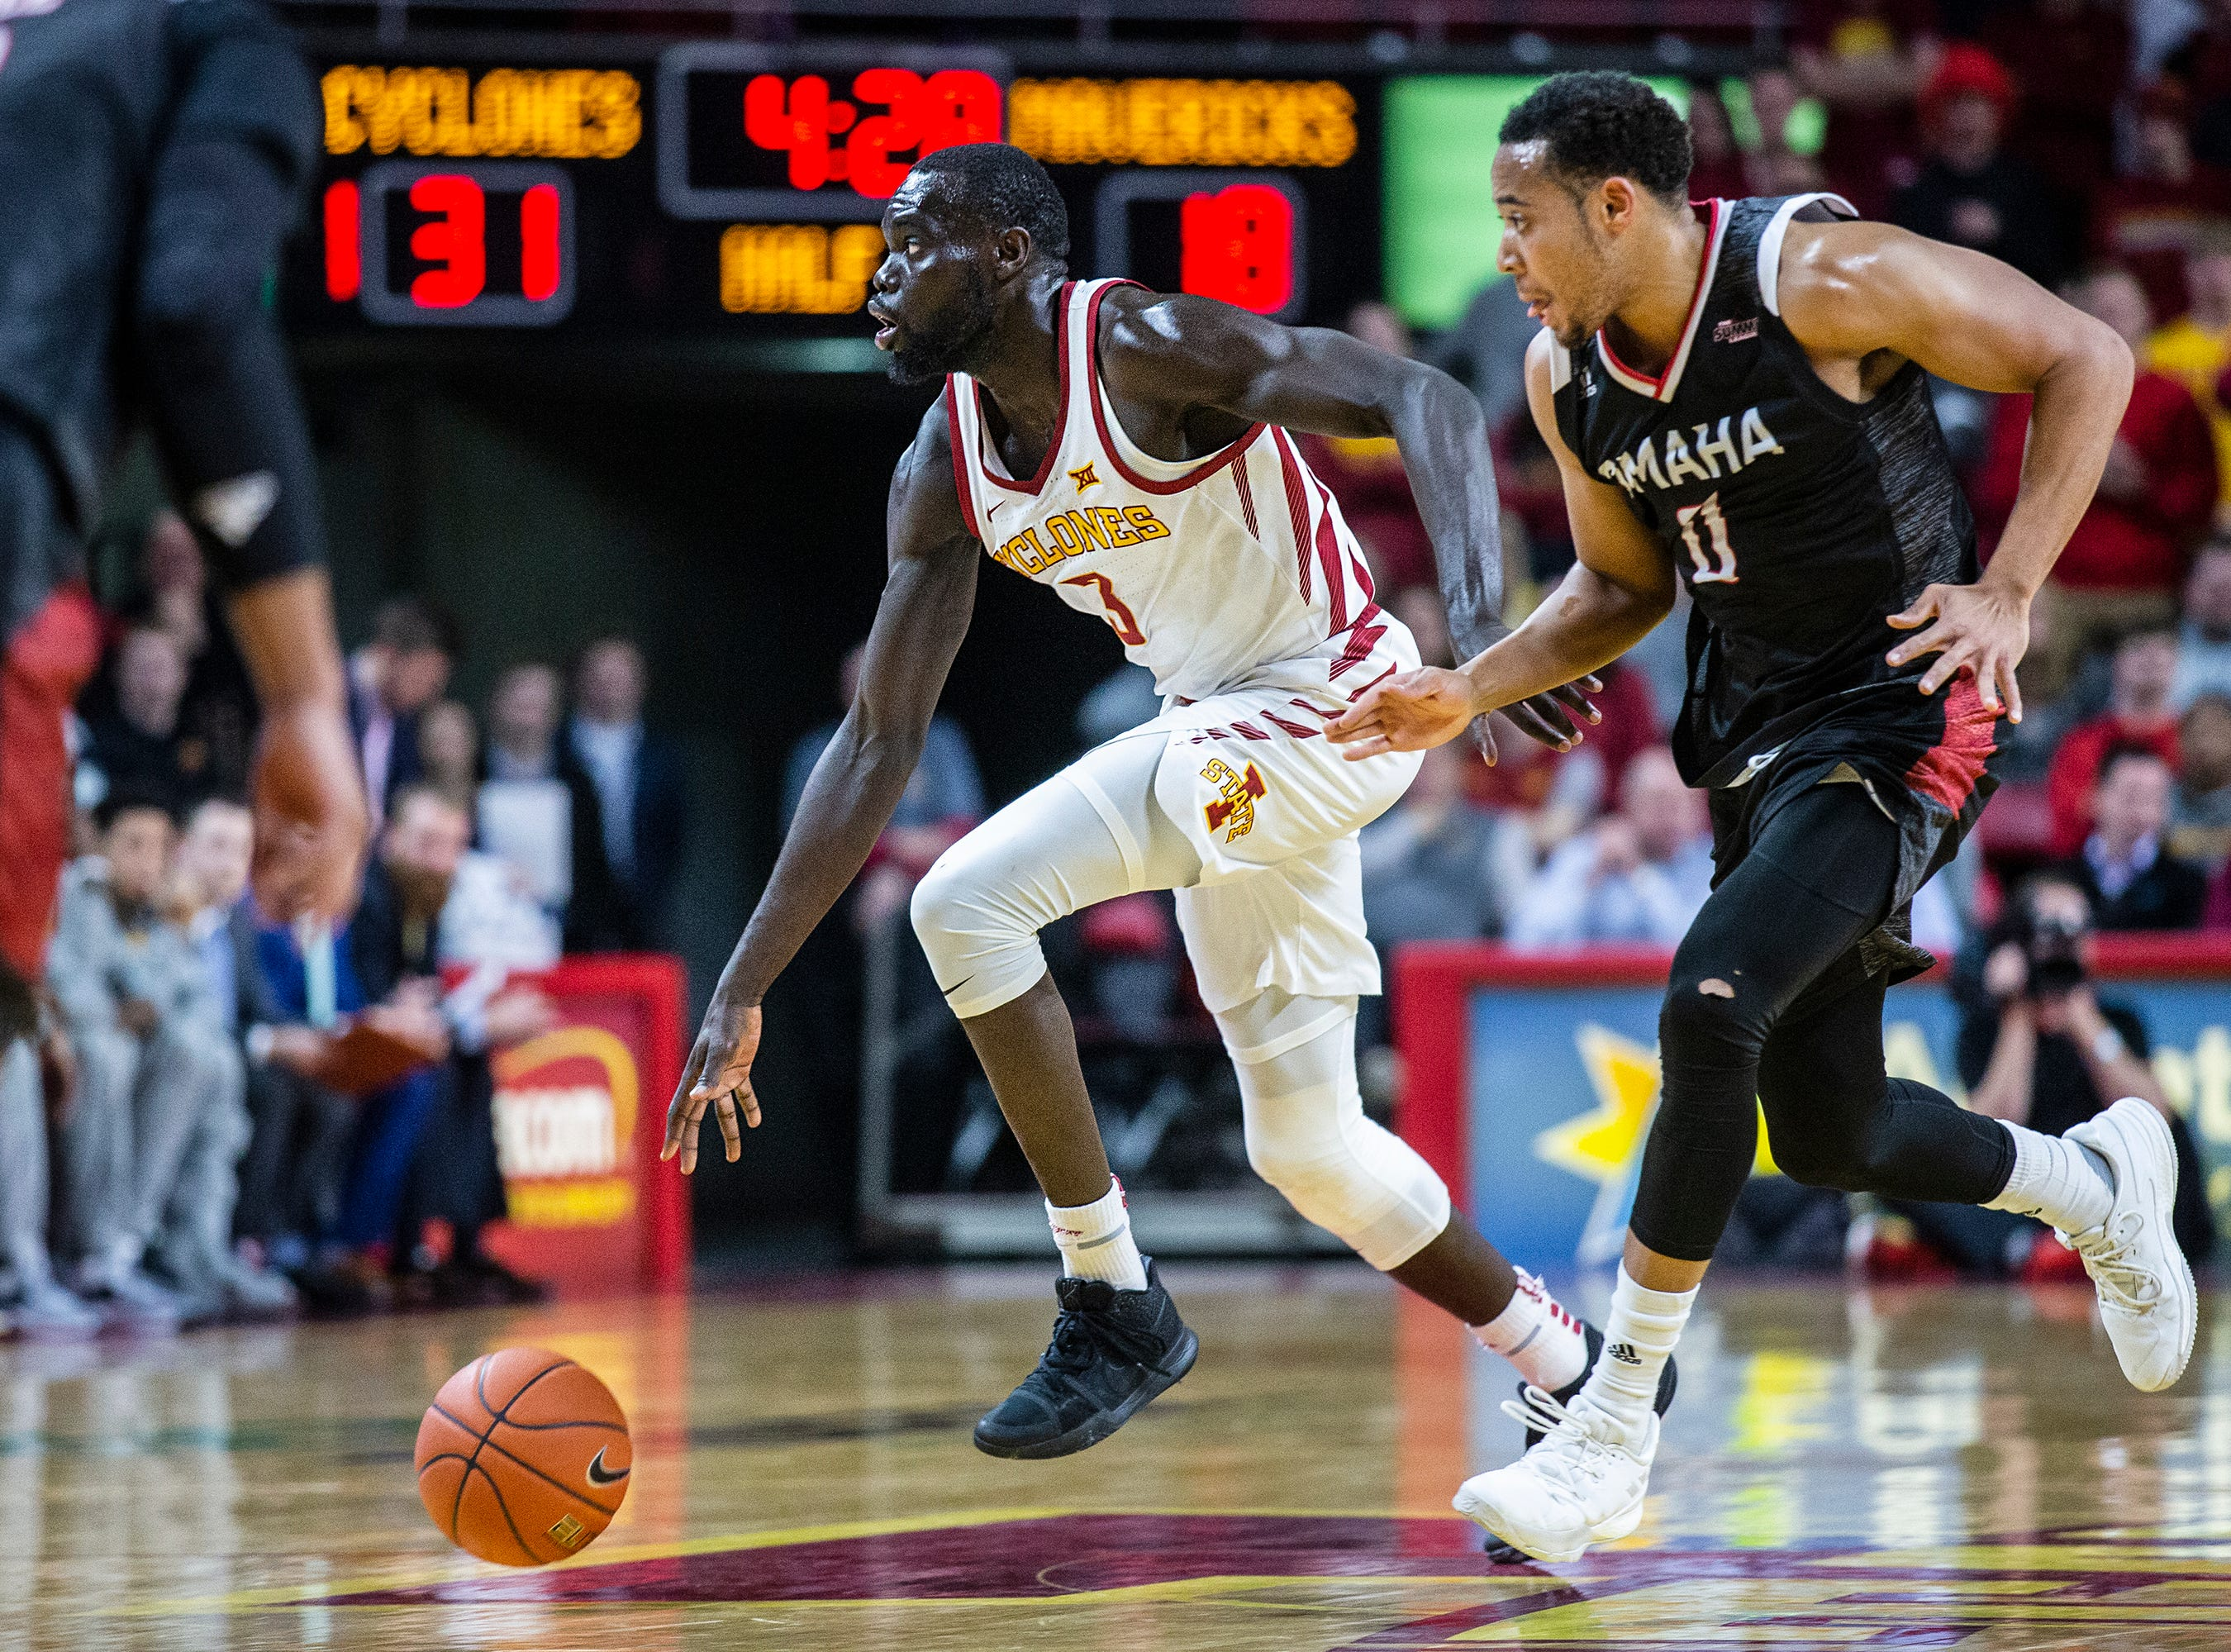 Iowa State's Marial Shayok brings the ball across the court during the Iowa State men's basketball game against Omaha on Monday, Nov. 26, 2018, at Hilton Coliseum, in Ames.